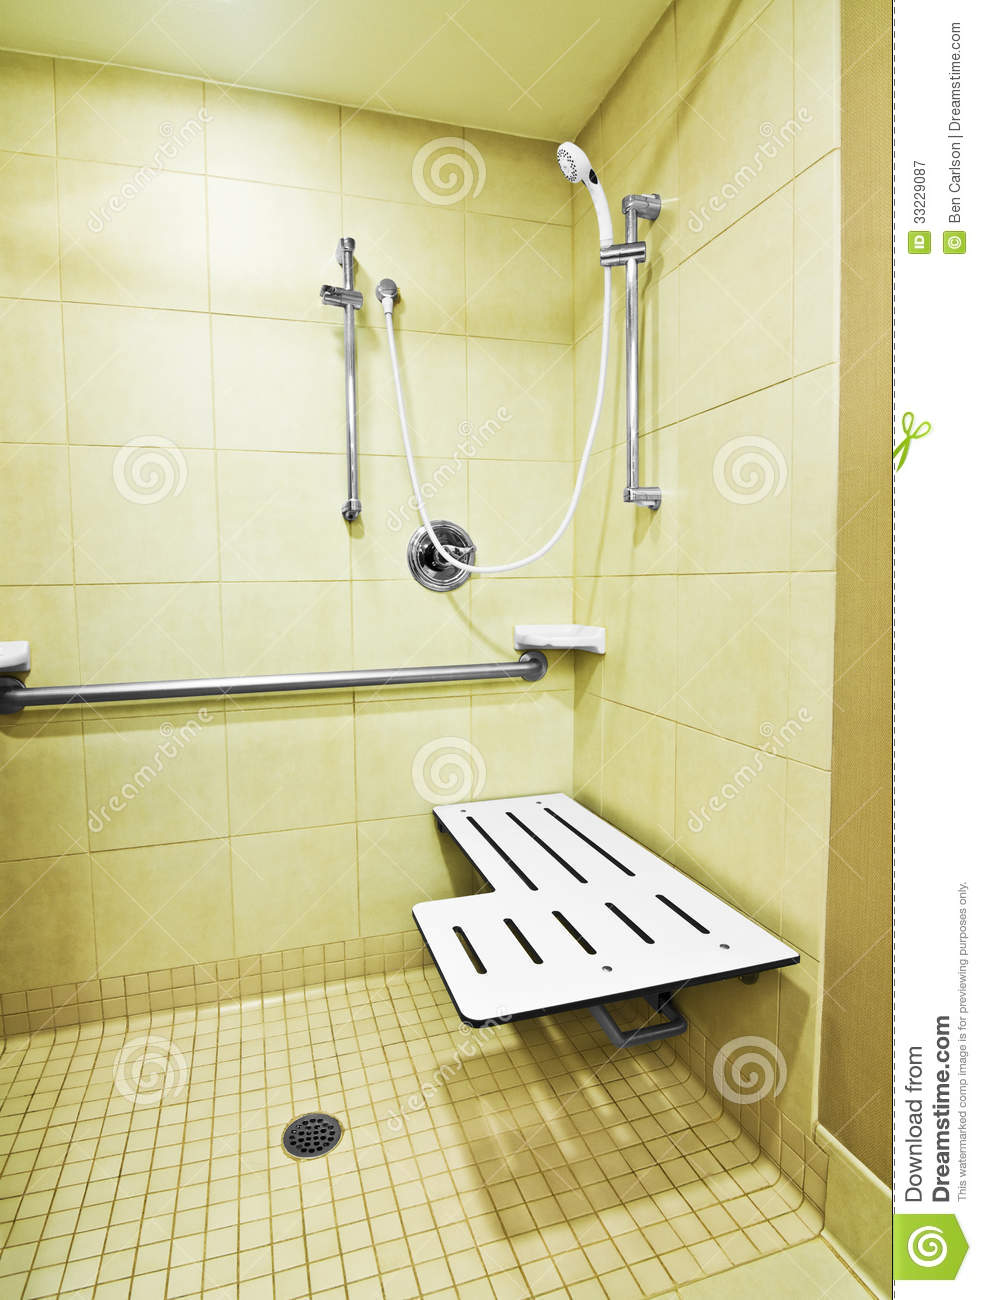 Handicap Shower Royalty Free Stock Photography Image 33229087